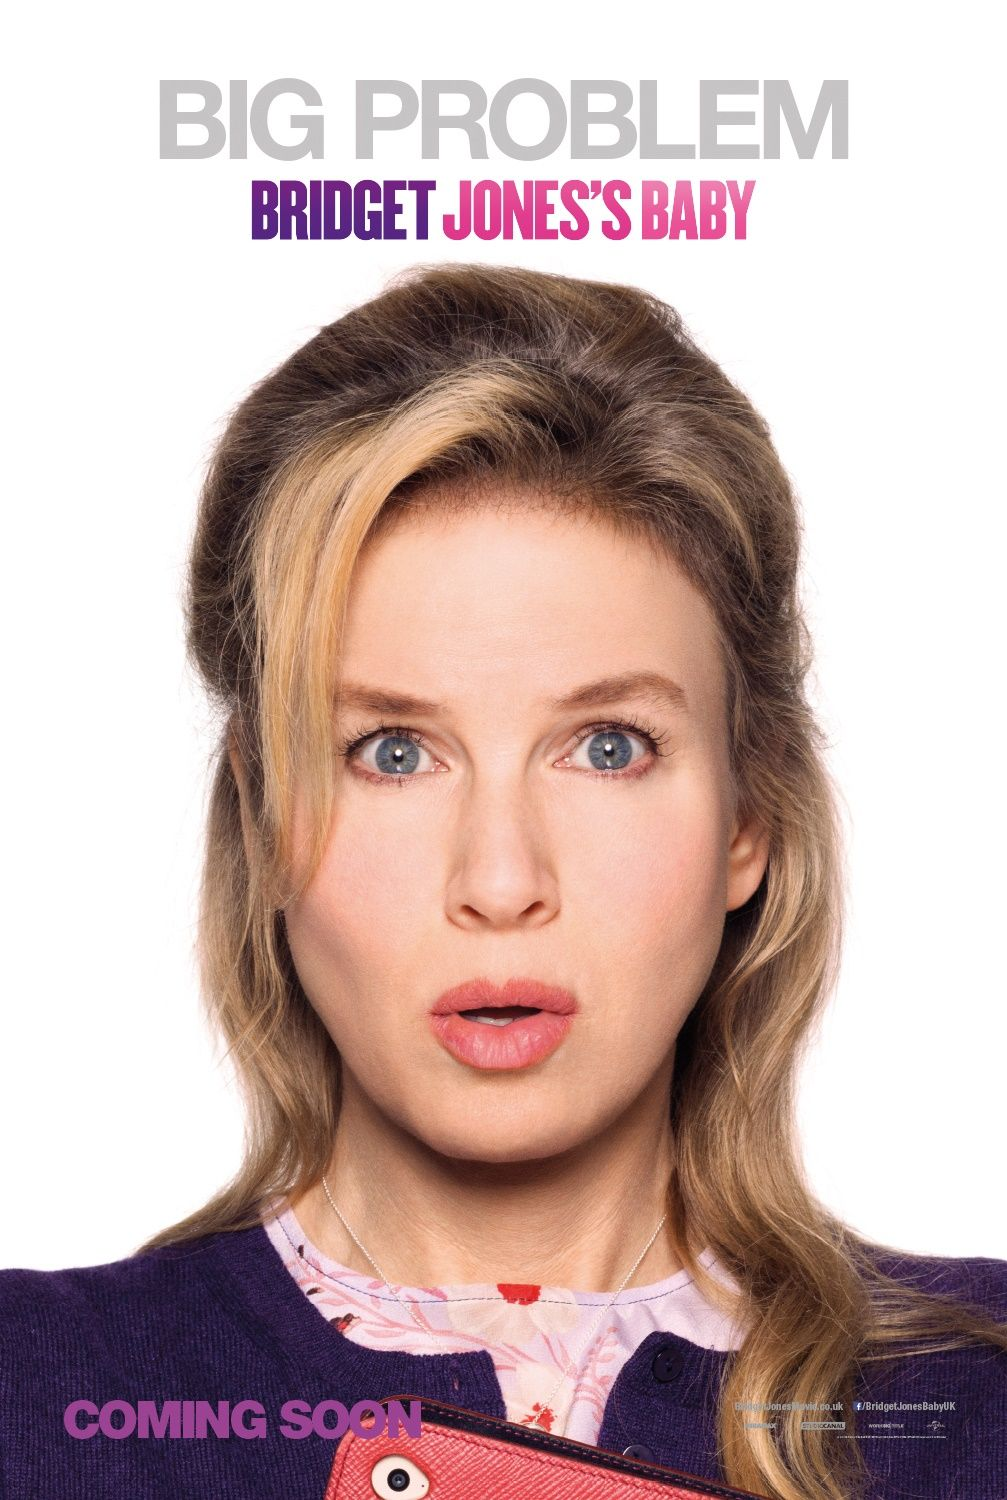 Check out the character posters for Bridget Jones's Baby   Live for Films